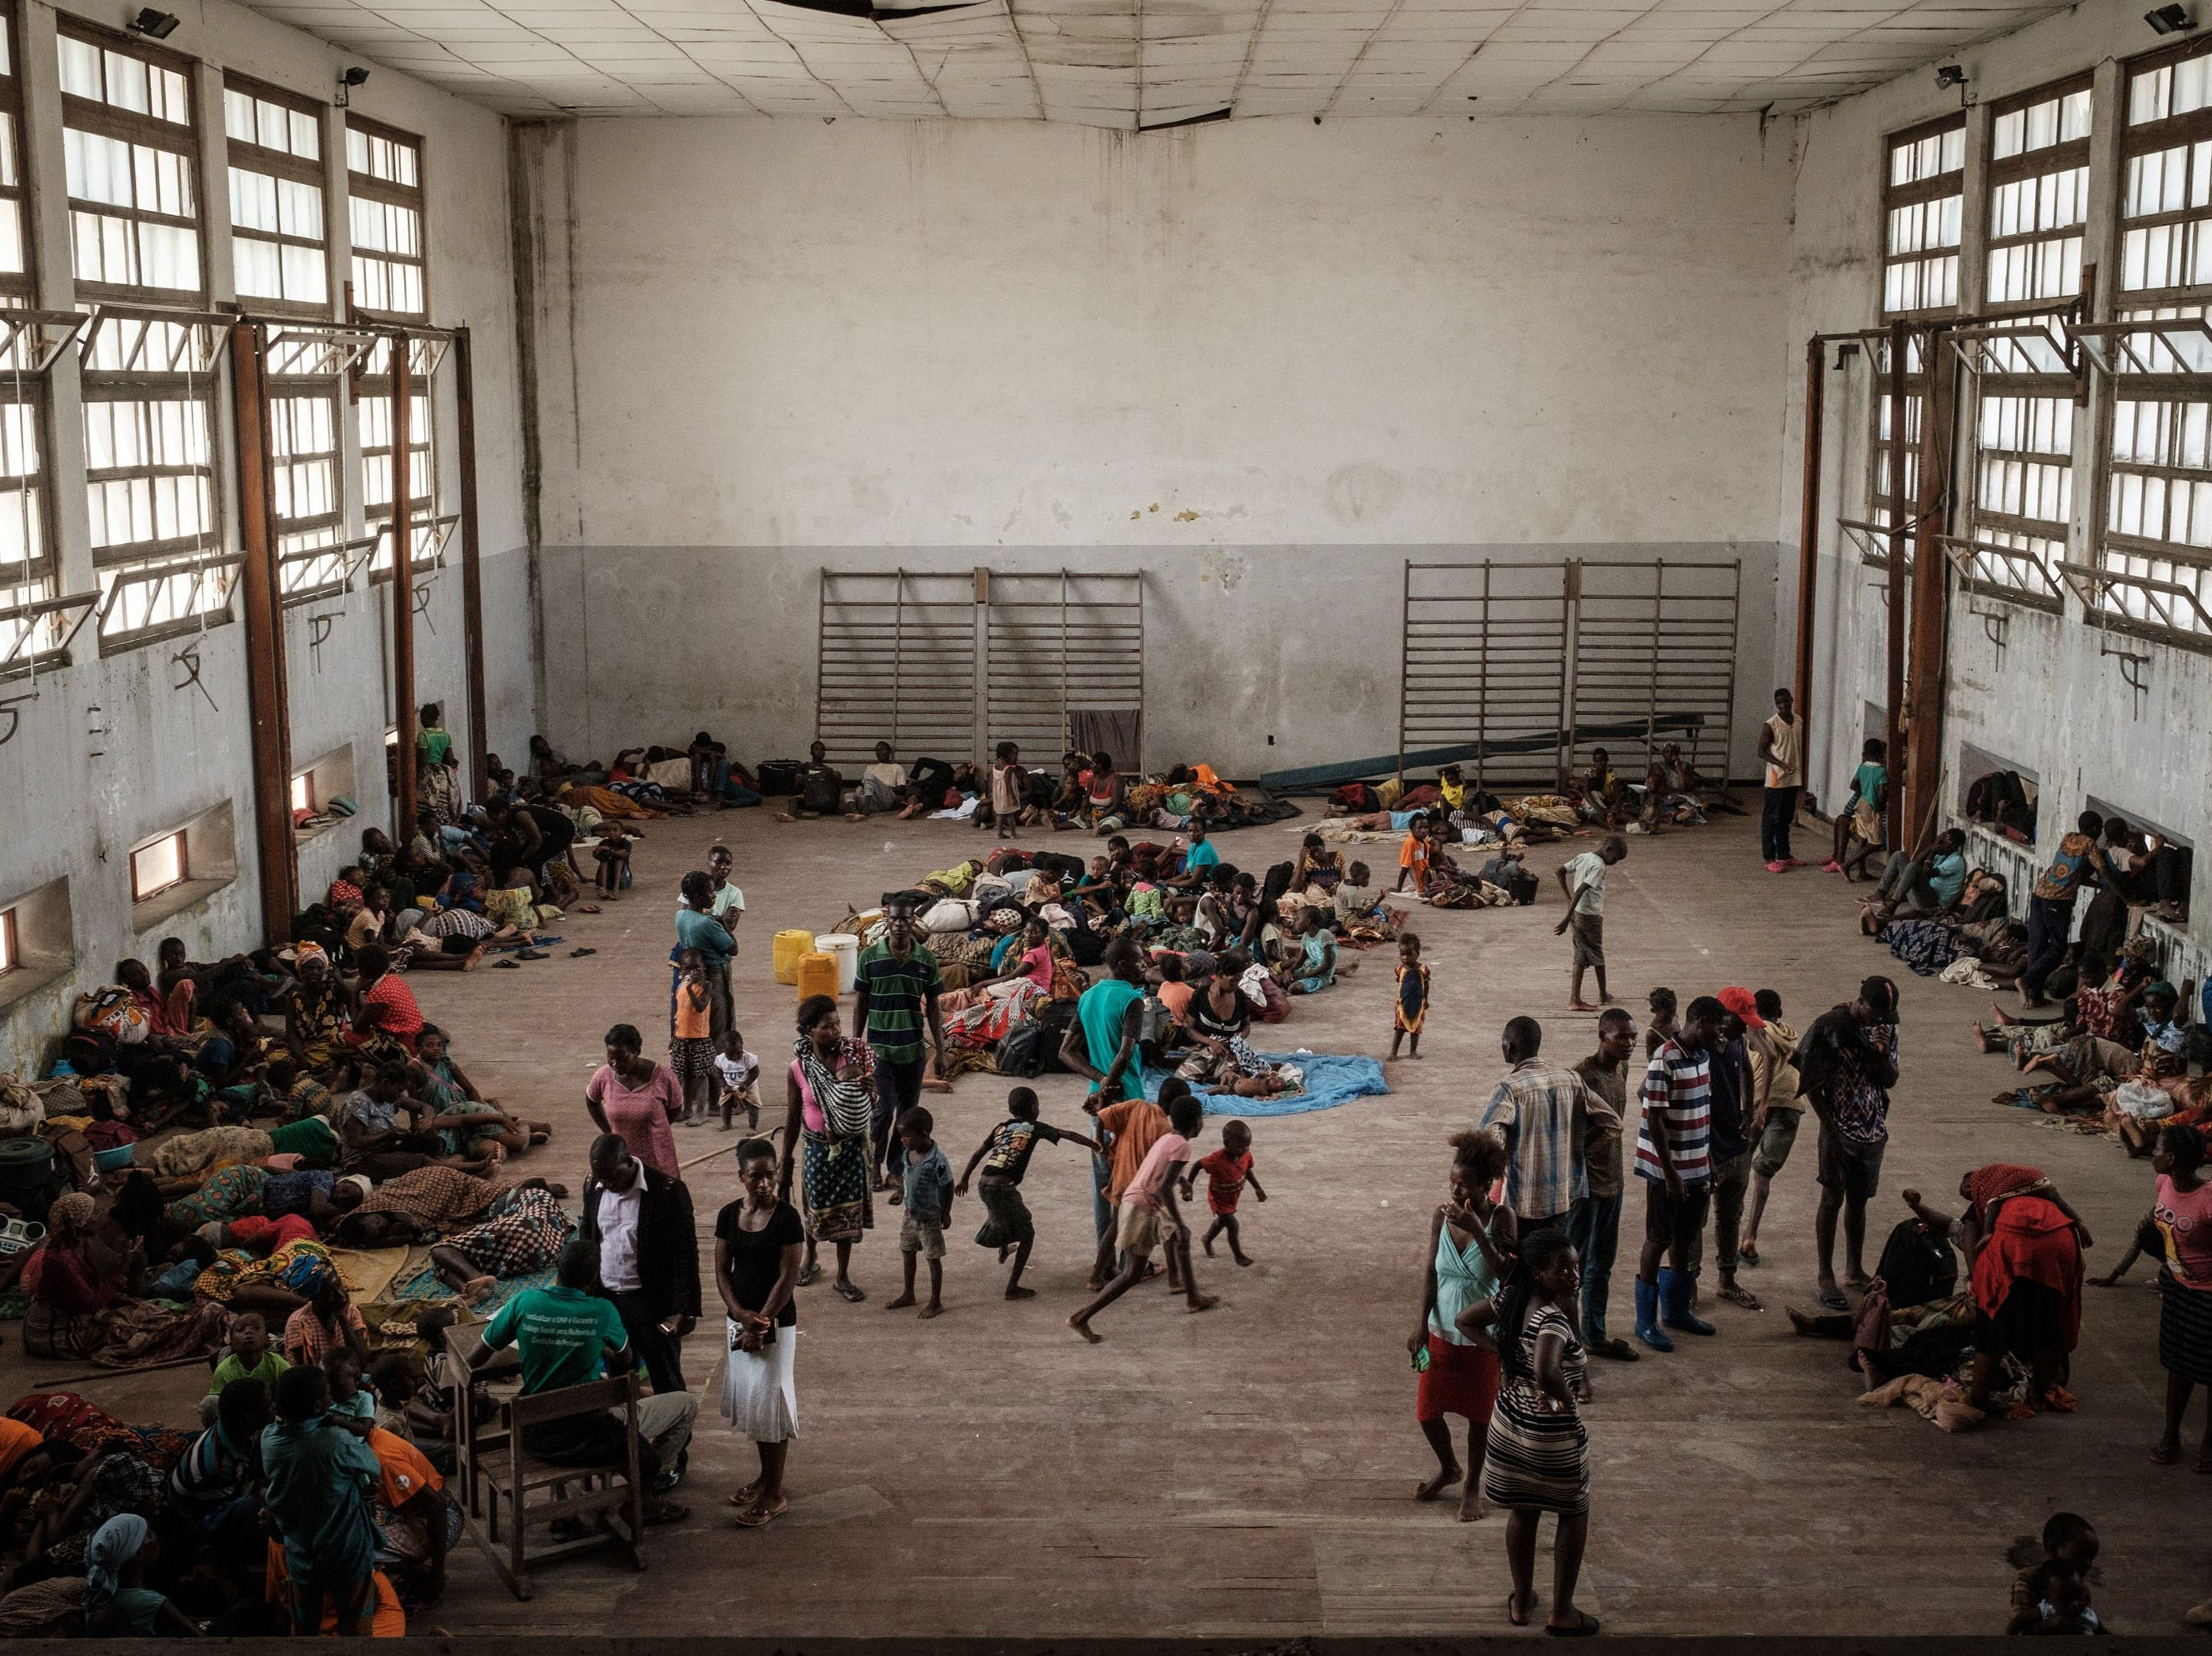 People from the isolated district of Buzi in Mozambique take shelter at a school used as an evacuation center in Beira, Mozambique, on March 21, 2019, following the devastation caused by Cyclone Idai.